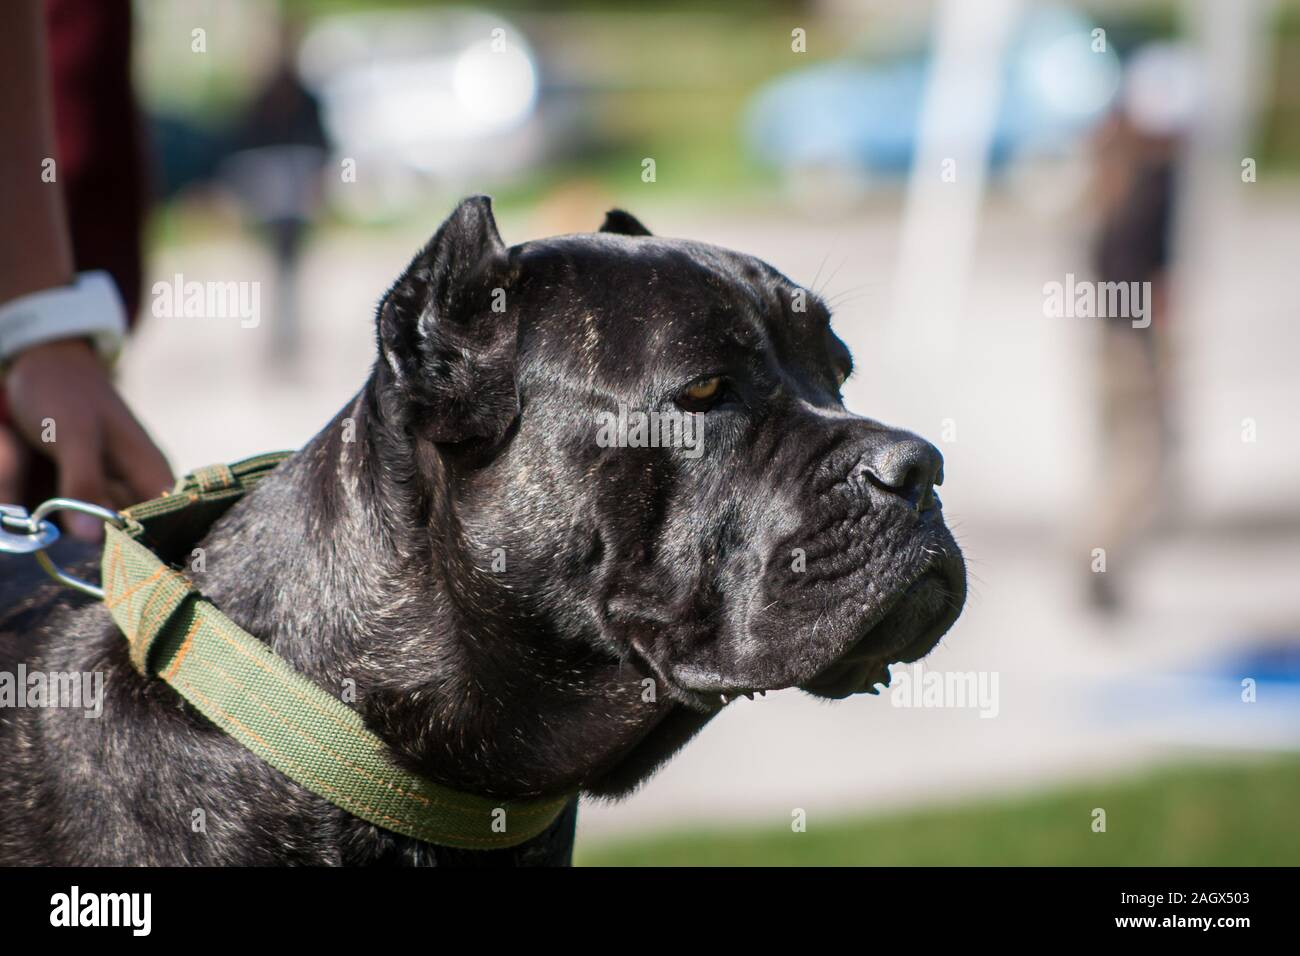 Black Brindle High Resolution Stock Photography And Images Alamy